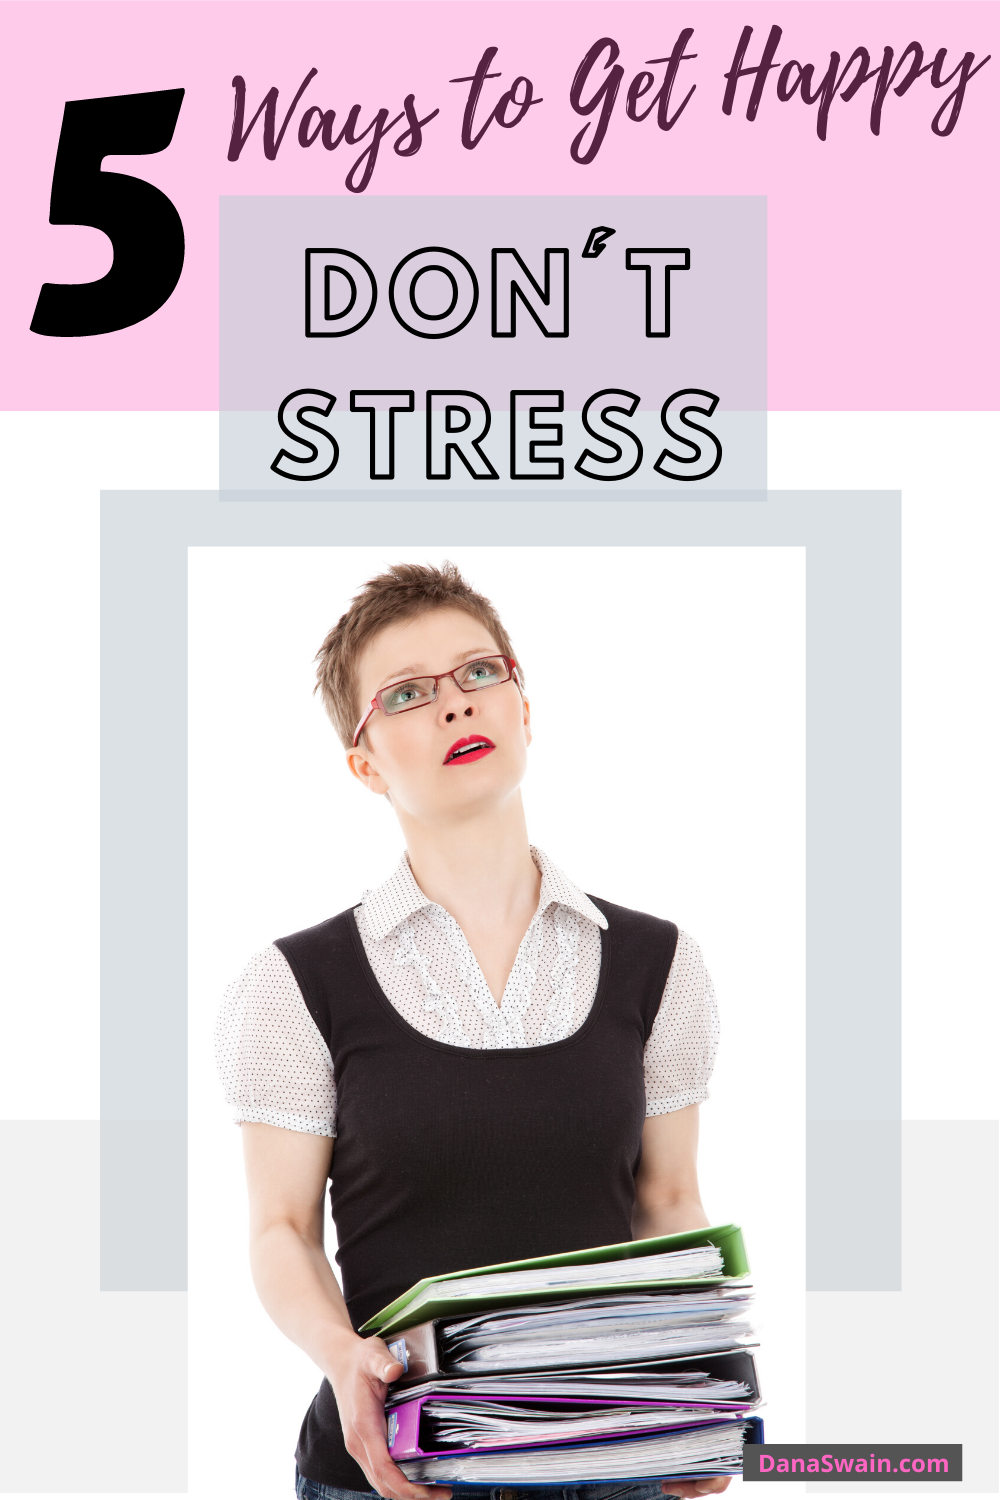 Work Stress Quotes Don't Stress! Work Happier in 5 Simple Ways